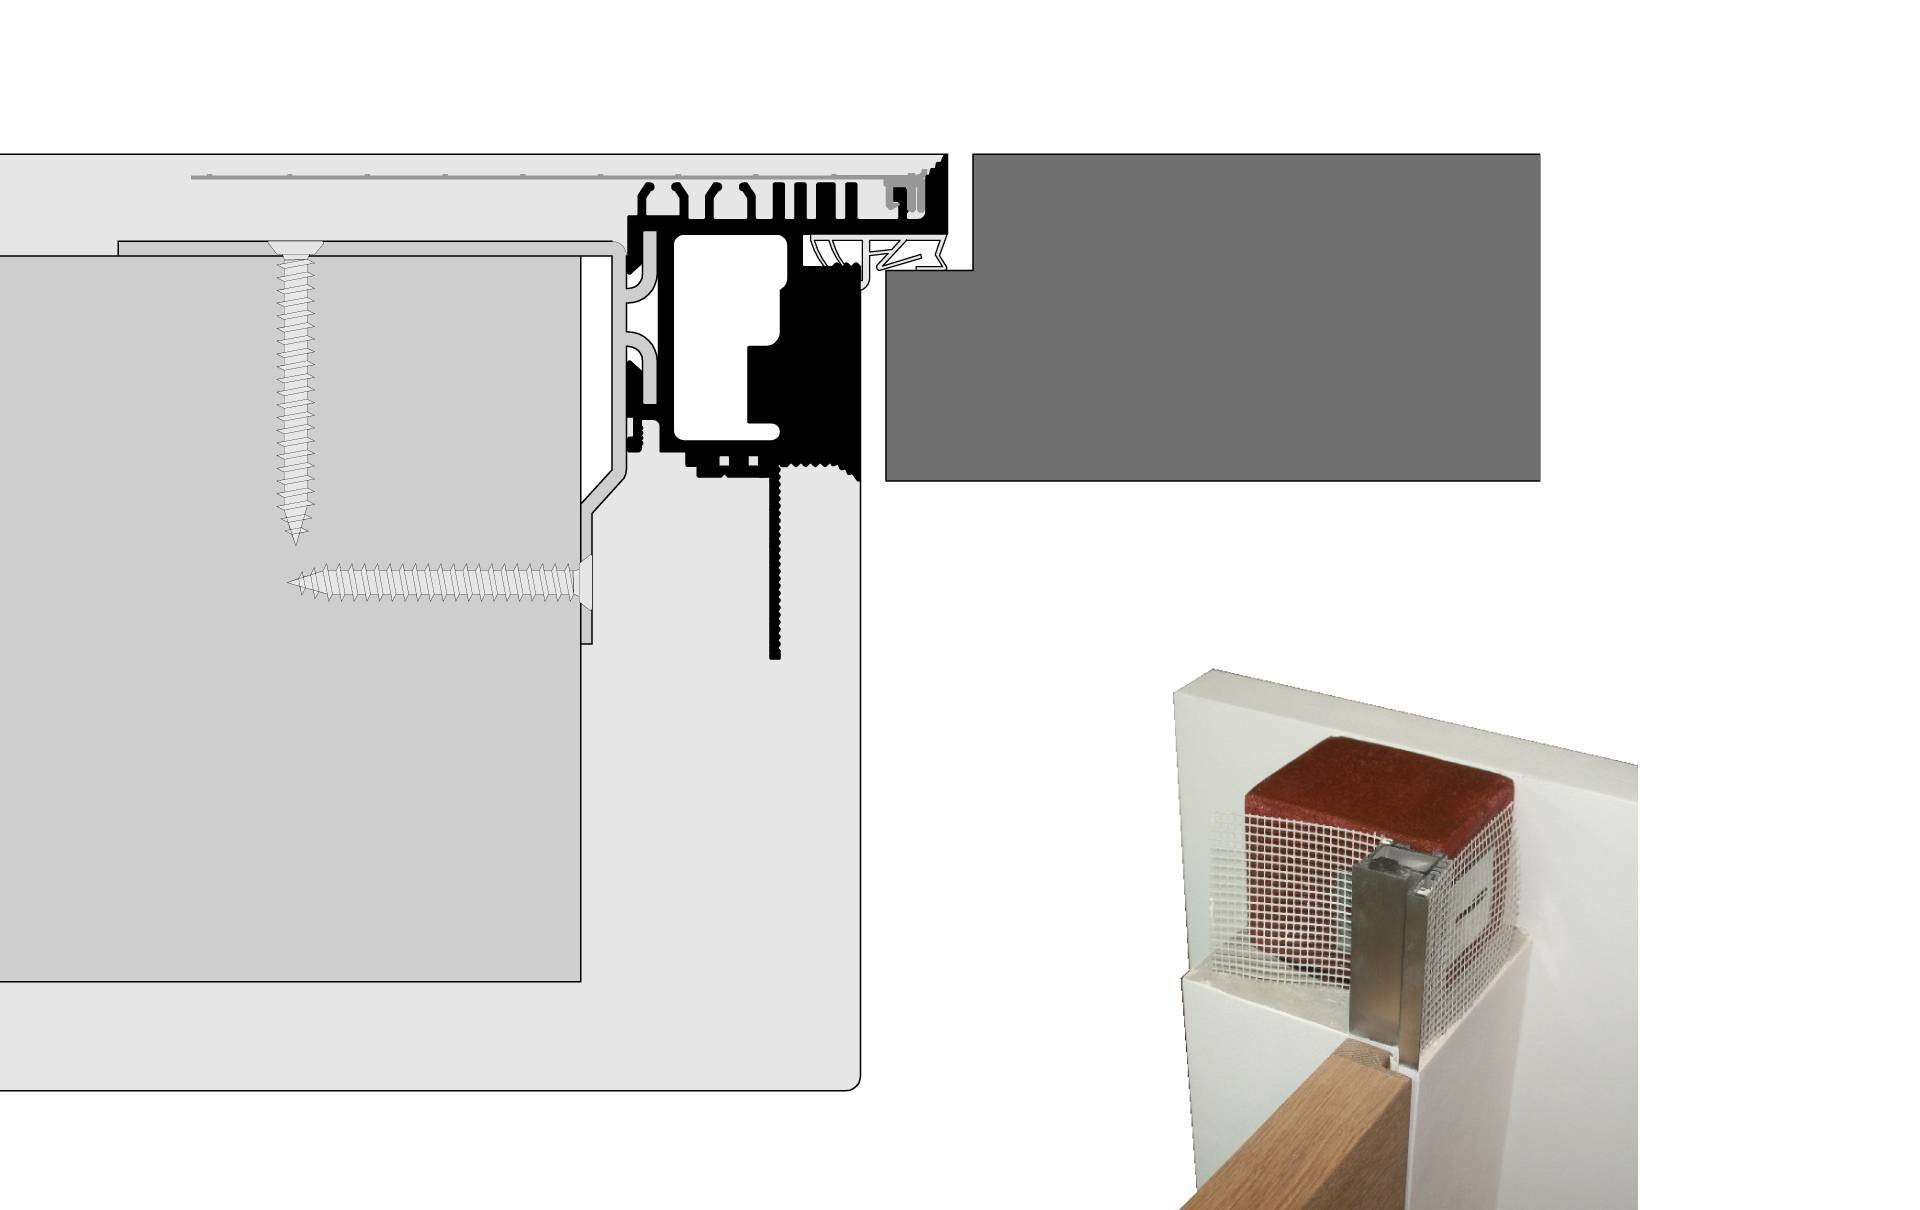 Frameless Ags Systems Flush Doors And Skirting Boards